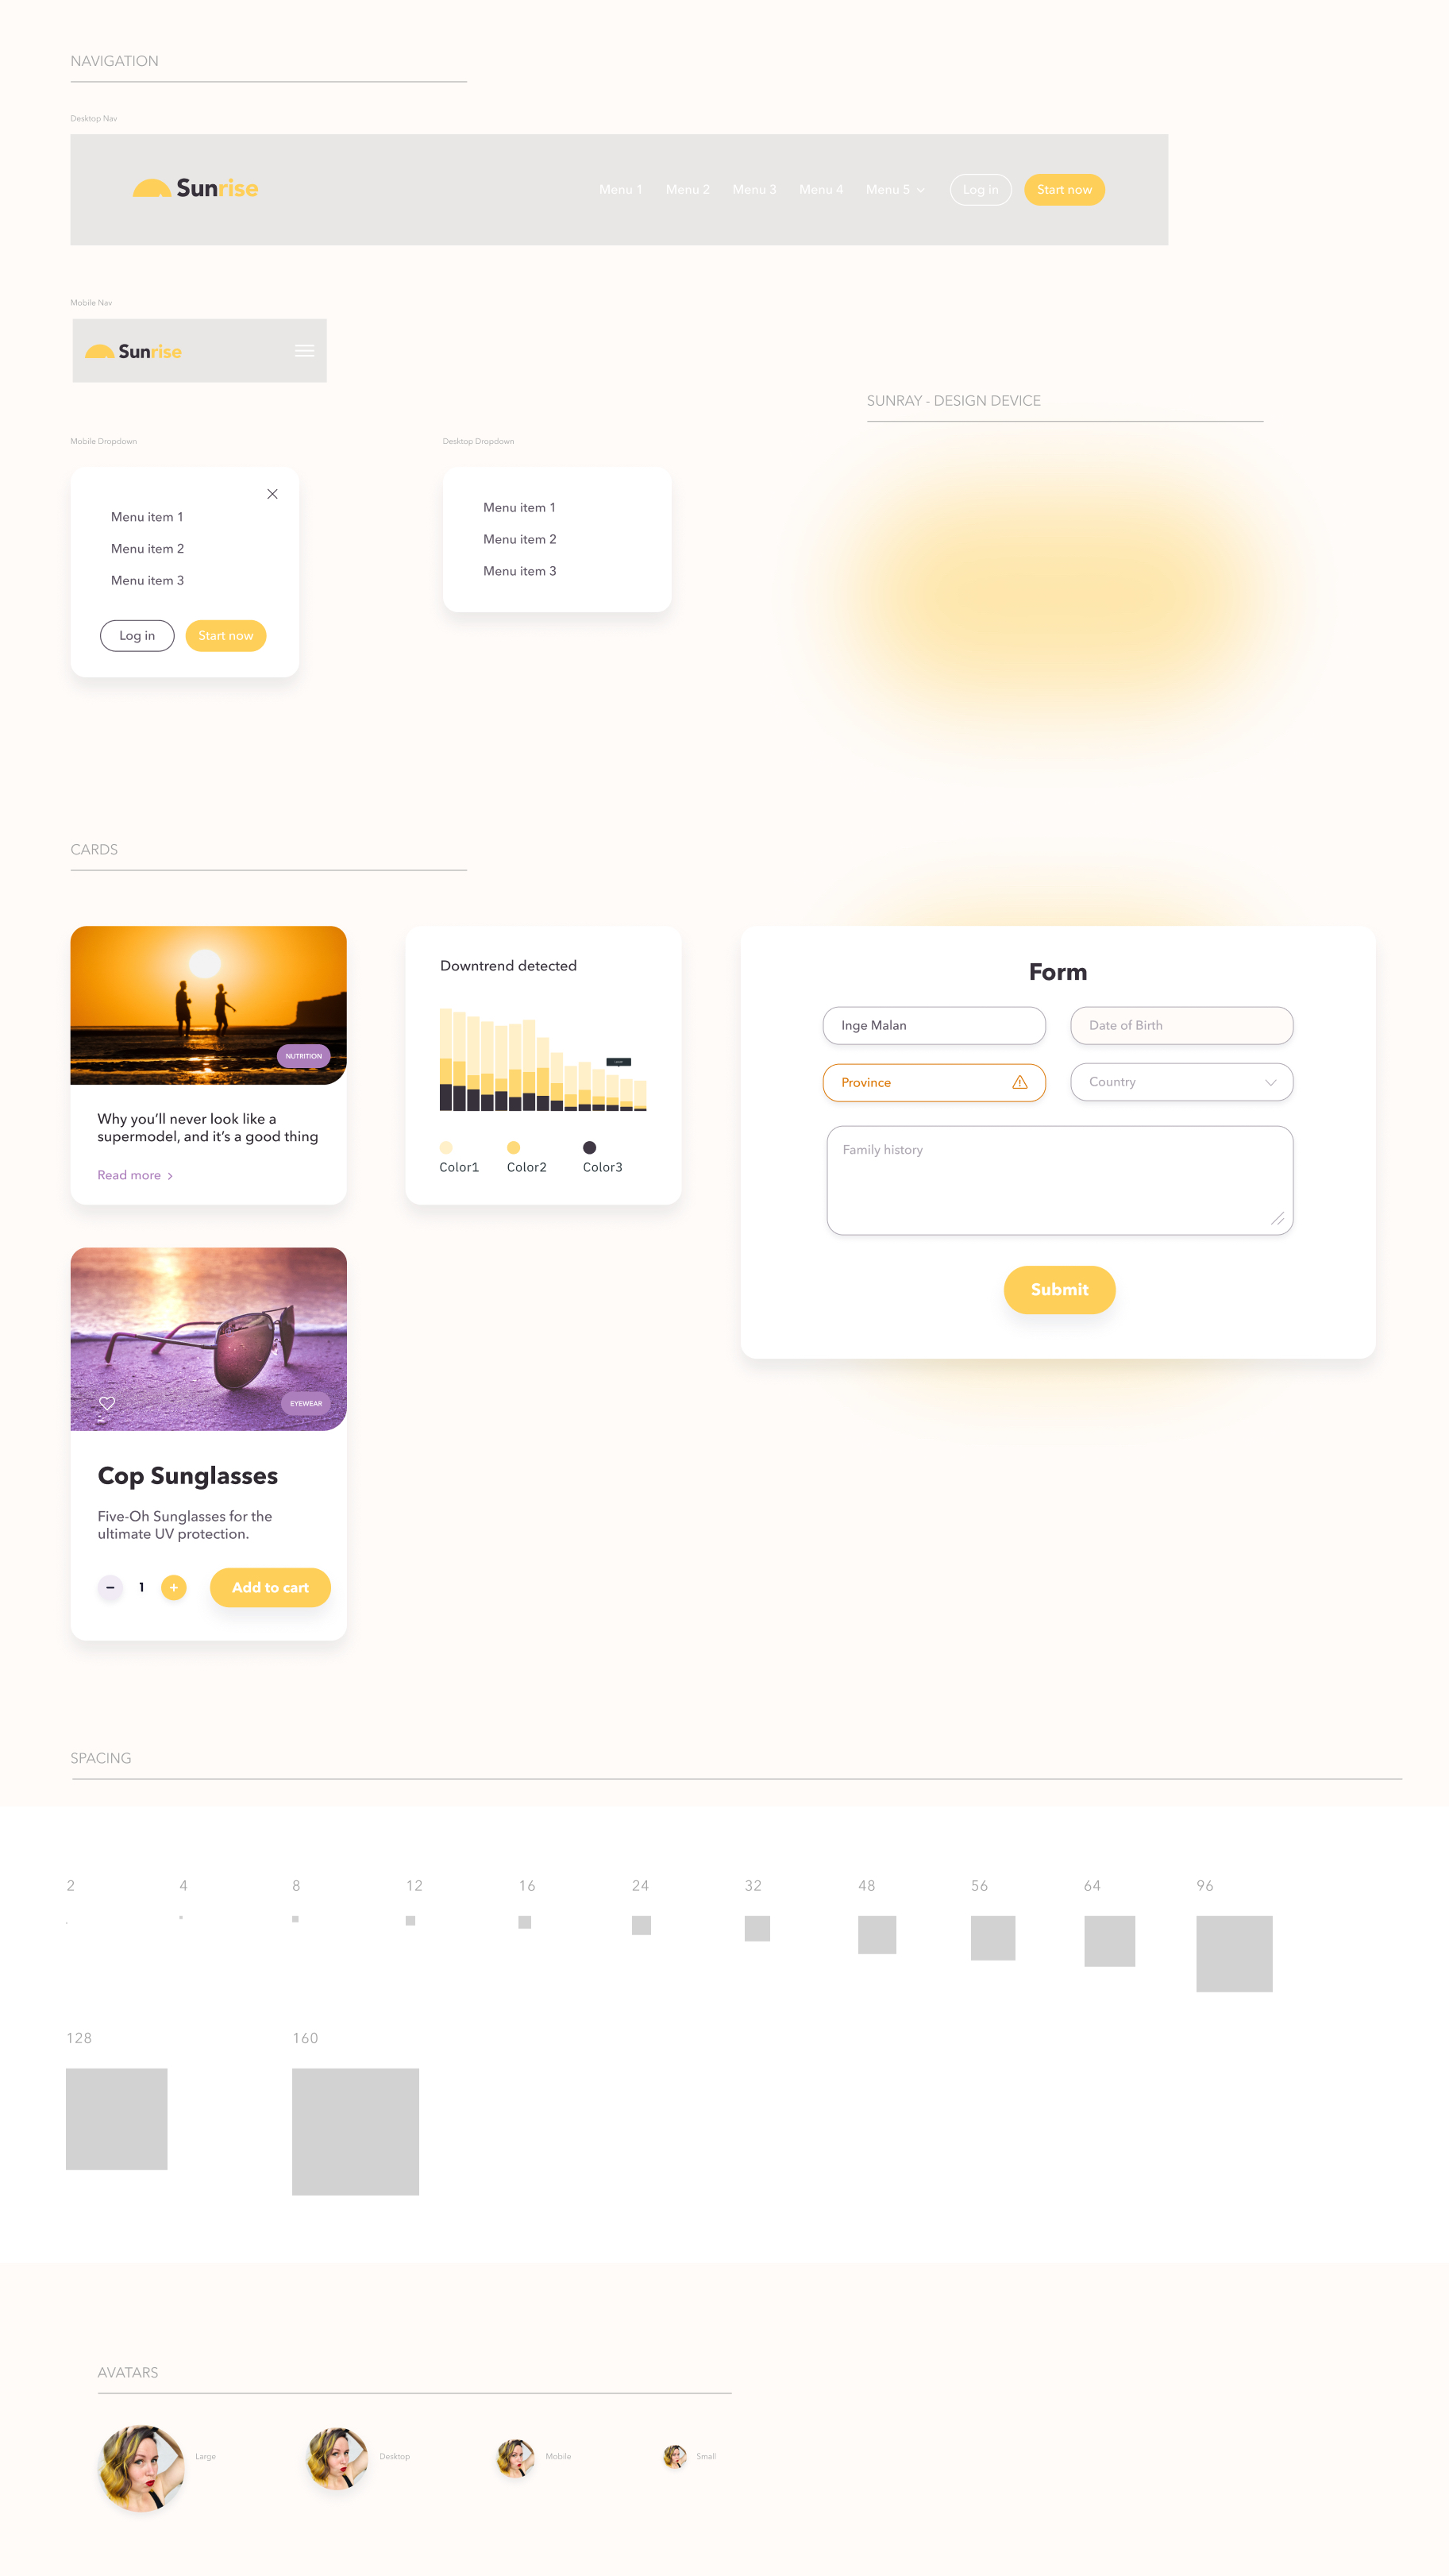 Sunrise Free Design System - ☀️Sunrise is a Design System oriented for Web (Desktop & Mobile) usage I created. I kept things fairly simple as I believe it should have space to organically grow your component library specifically for your application. I decided to make ☀️Sunrise, open source and available to anyone who would like to use it or be inspired by it.